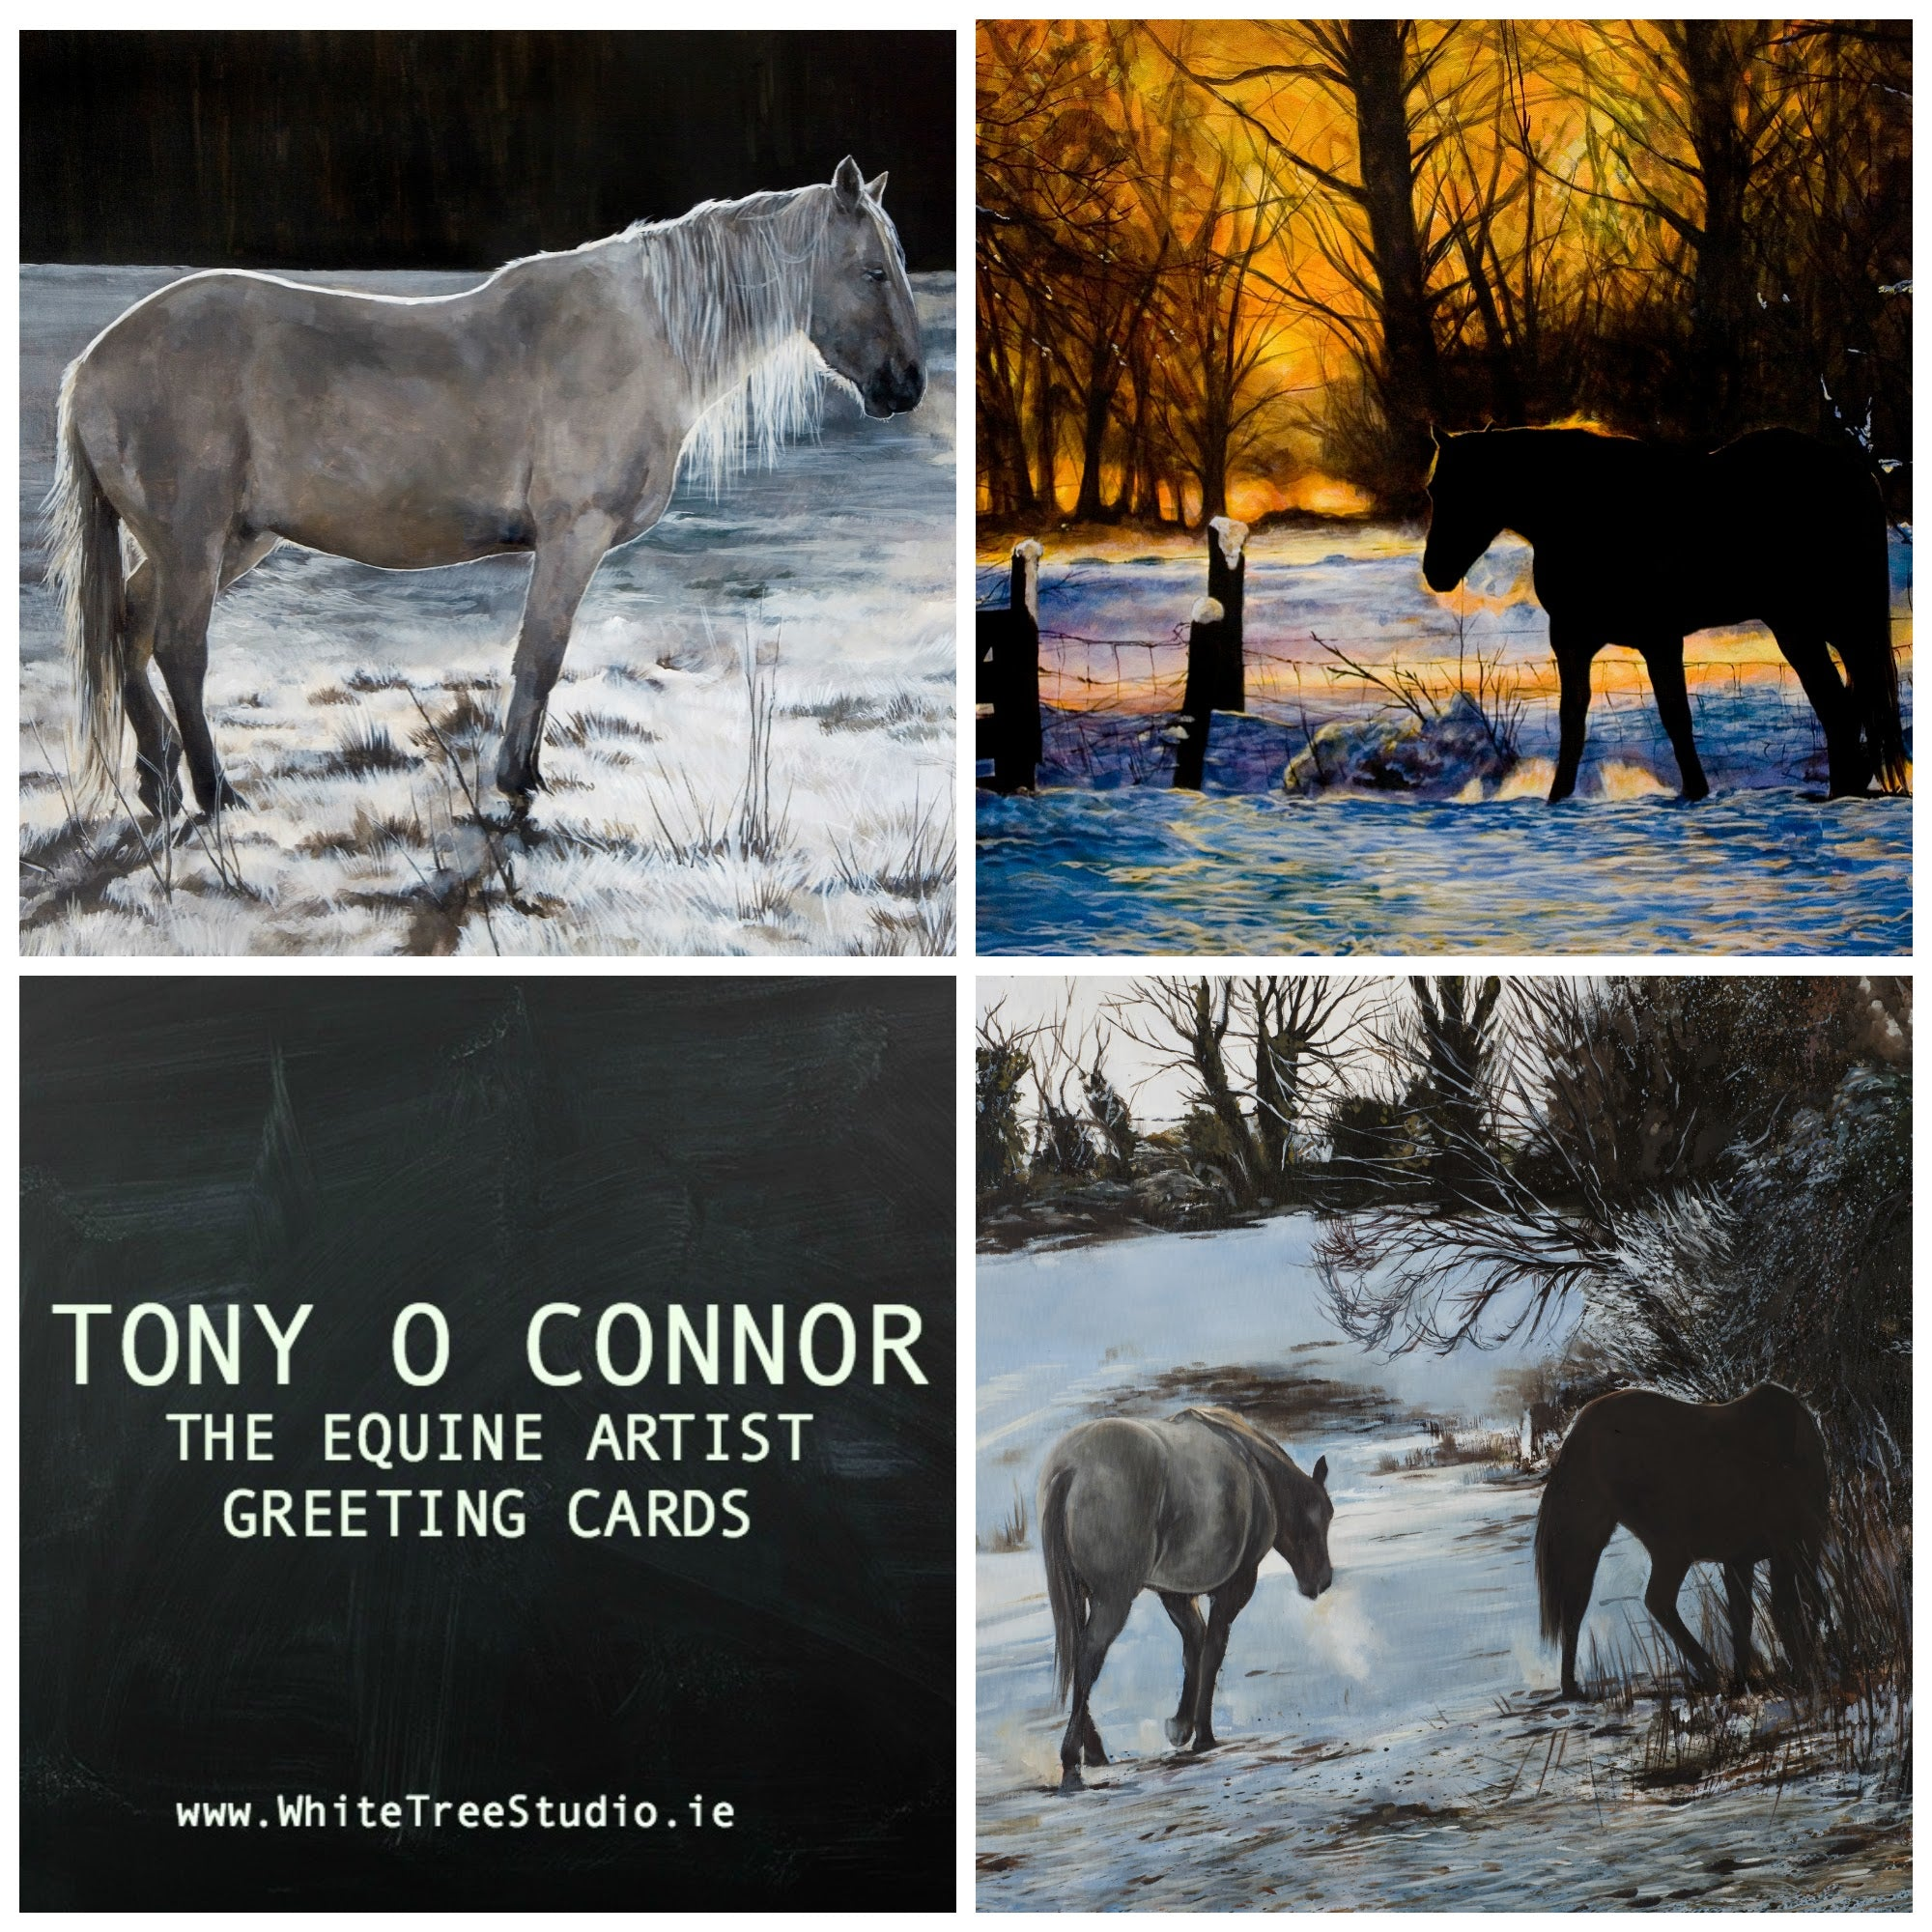 Tony o connor equine art greeting cards 6 pack tony oconnor tony o connor greeting cards 6 pack m4hsunfo